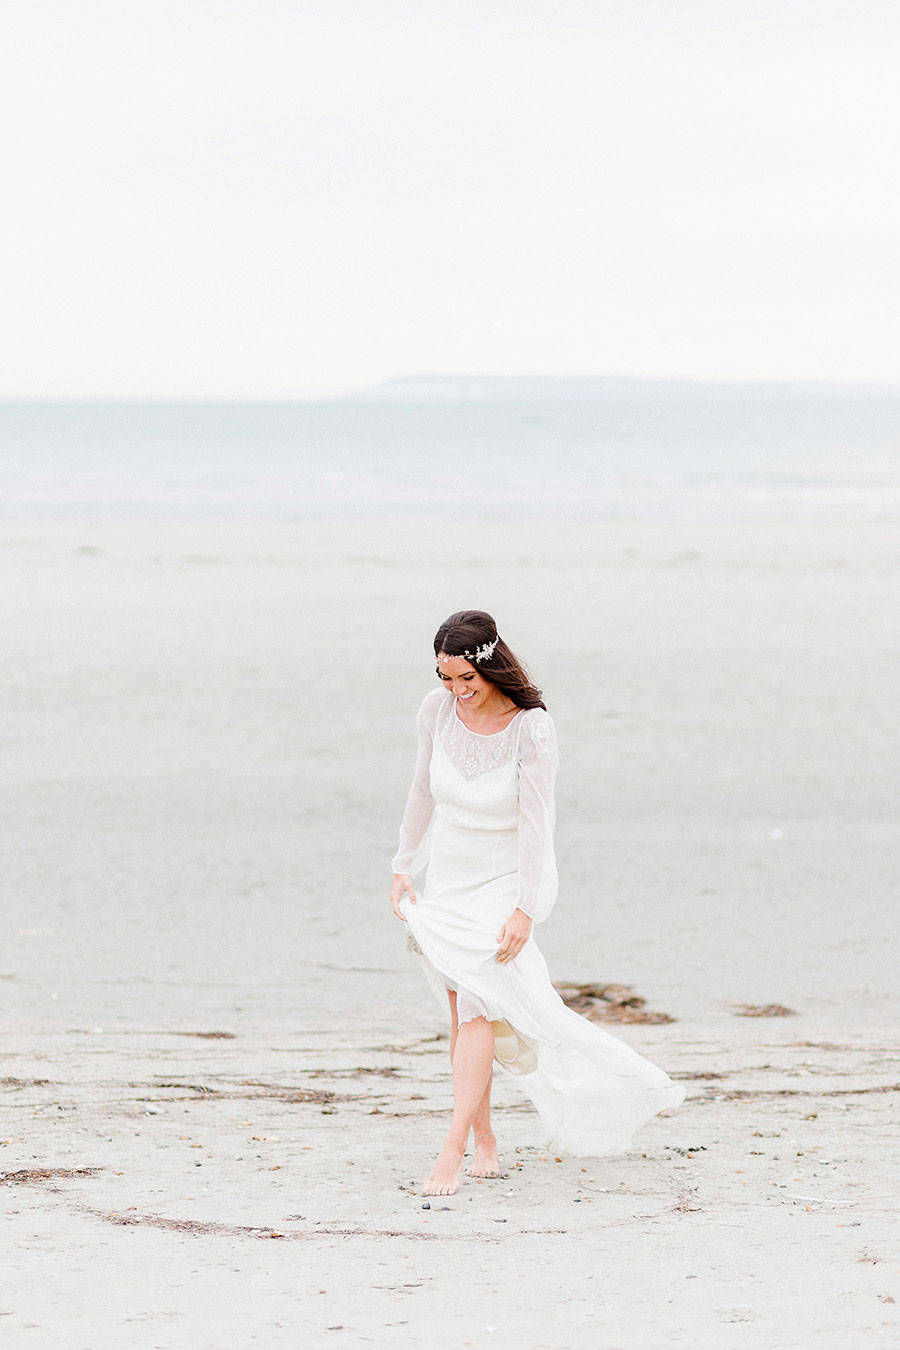 Down By The Sea! A Free-Spirited Elopement Editorial Shoot0037